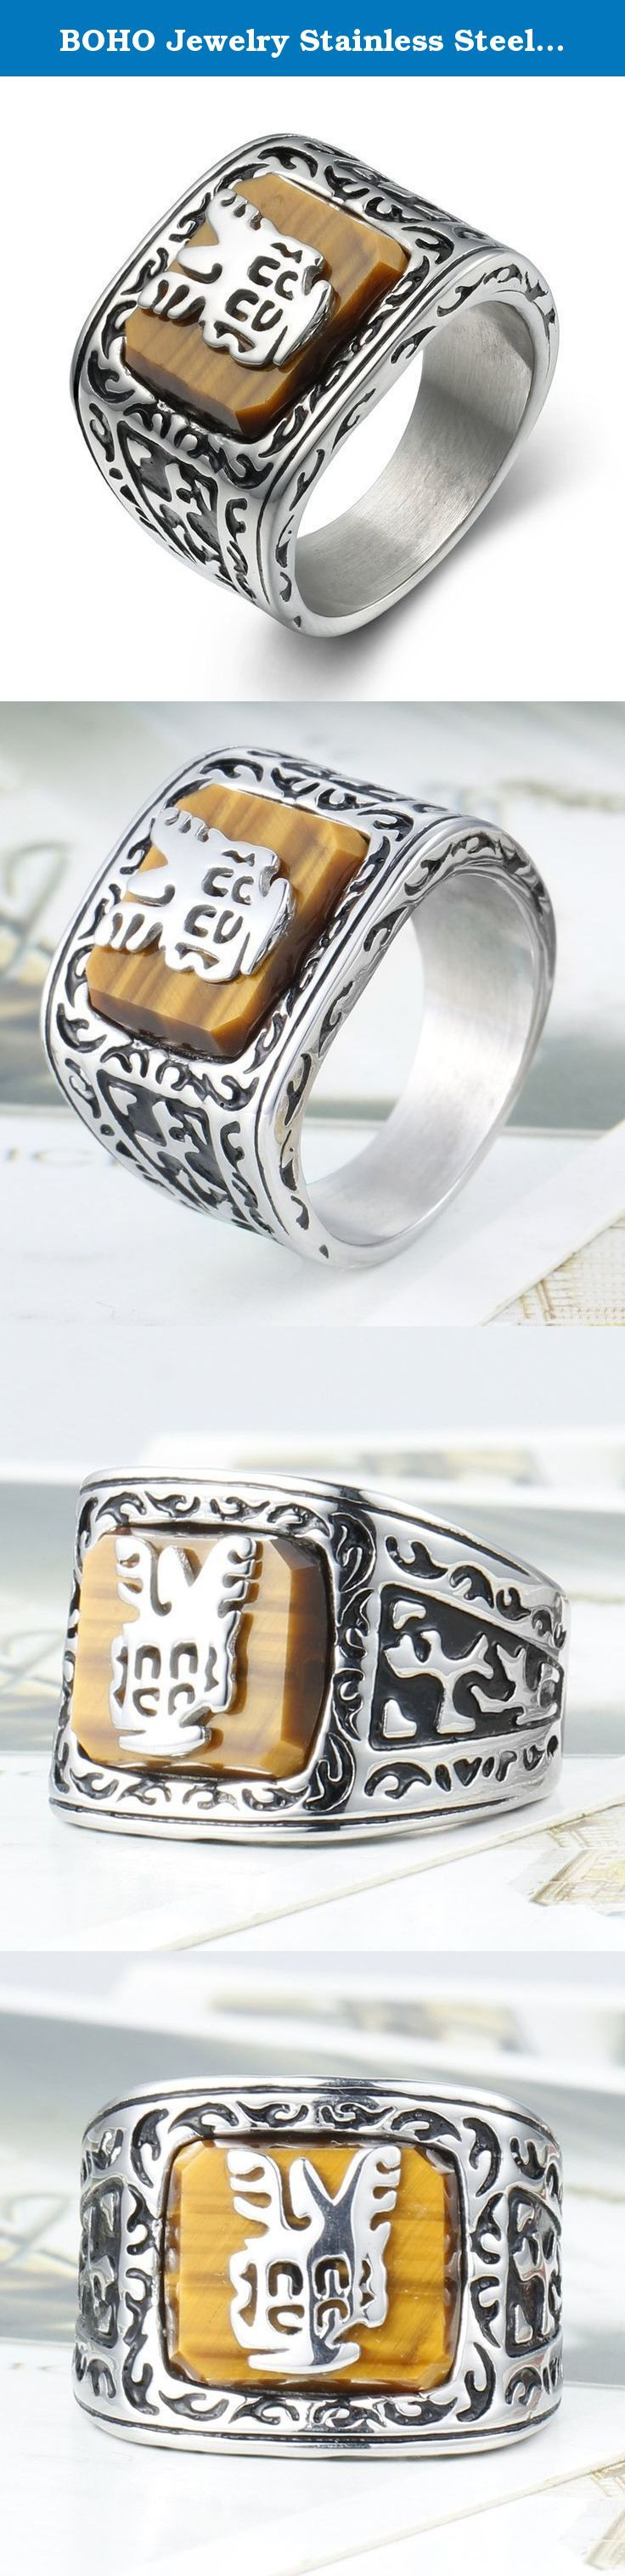 BOHO Jewelry Stainless Steel Vintage Mens Ring Tiger-Eye Gemstone Inlaid Black Silver (10). Why choose BOHO JEWELRY? BOHO JEWELRY is an enterprise that mainly produces and sales fashion jewelry ,with many years experience. Why choose Stainless Steel Jewelry? Stainless Steel jewelry does not tarnish and oxidize, which can last longer than other jewelries. It is able to endure a lot of wear and tear. And it is amazingly hypoallergenic. Such advantages make it a more popular accessory. Why…